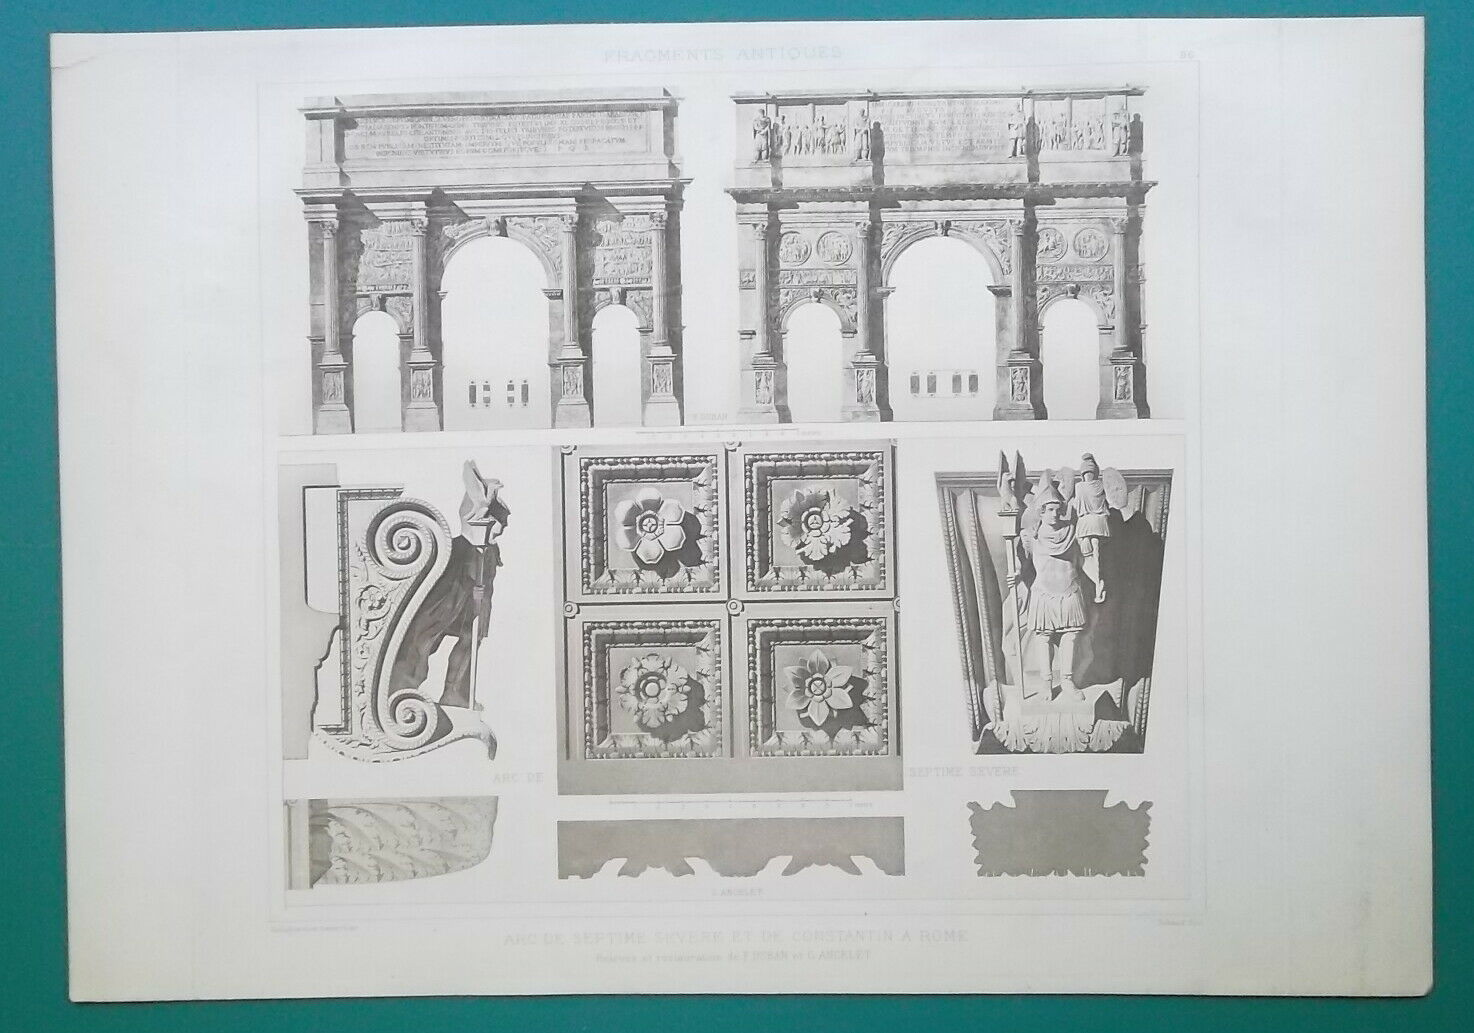 Primary image for ROME Arch of Septimus Severus & Constantine Facade Details - 1905 d'Espouy Print